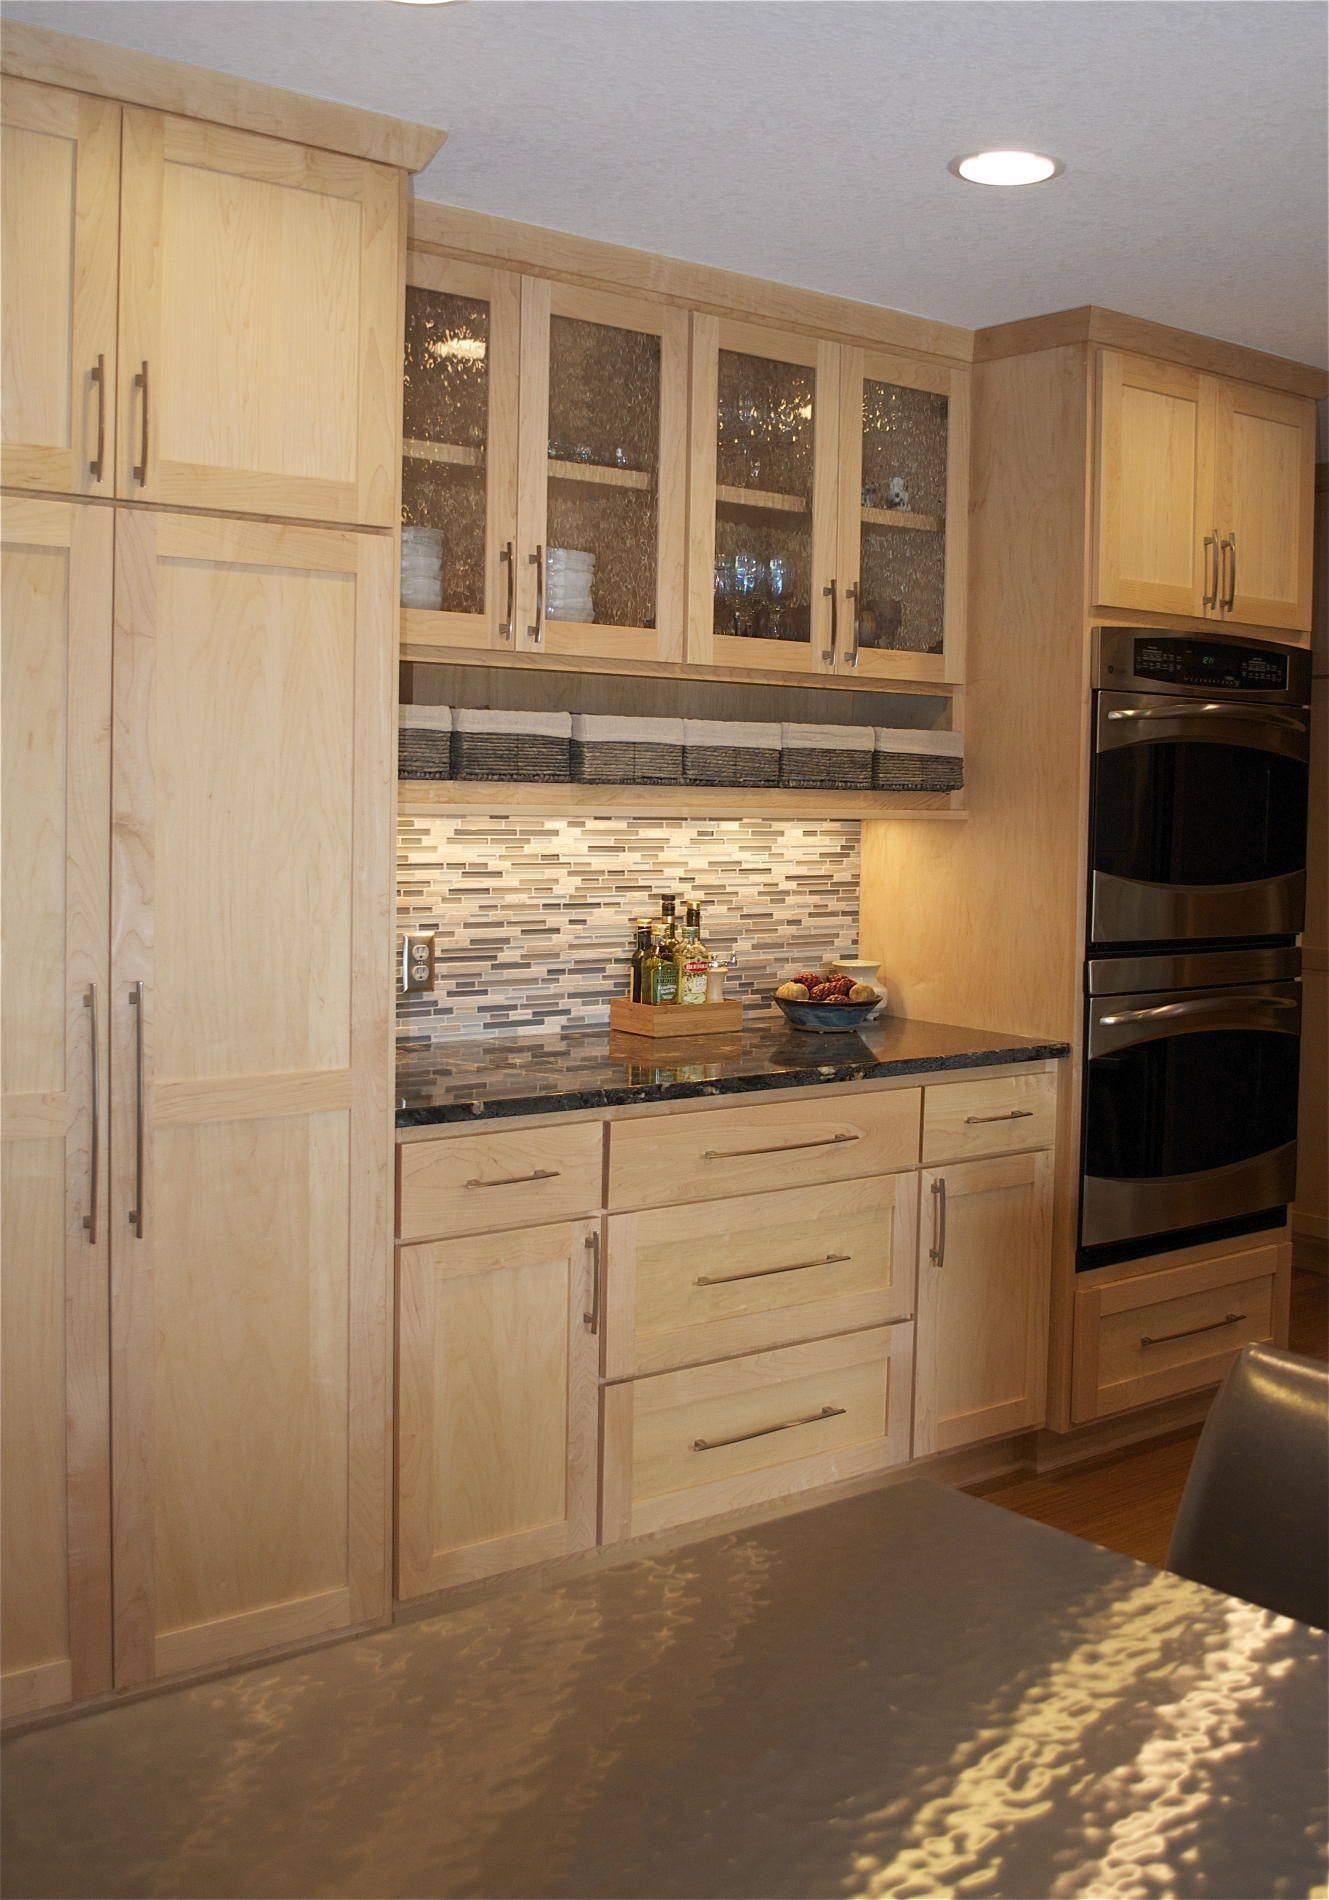 Exactly What We Re Looking For Wooden Kitchen Cabinets Light Wood Cabinets Light Wood Kitchens